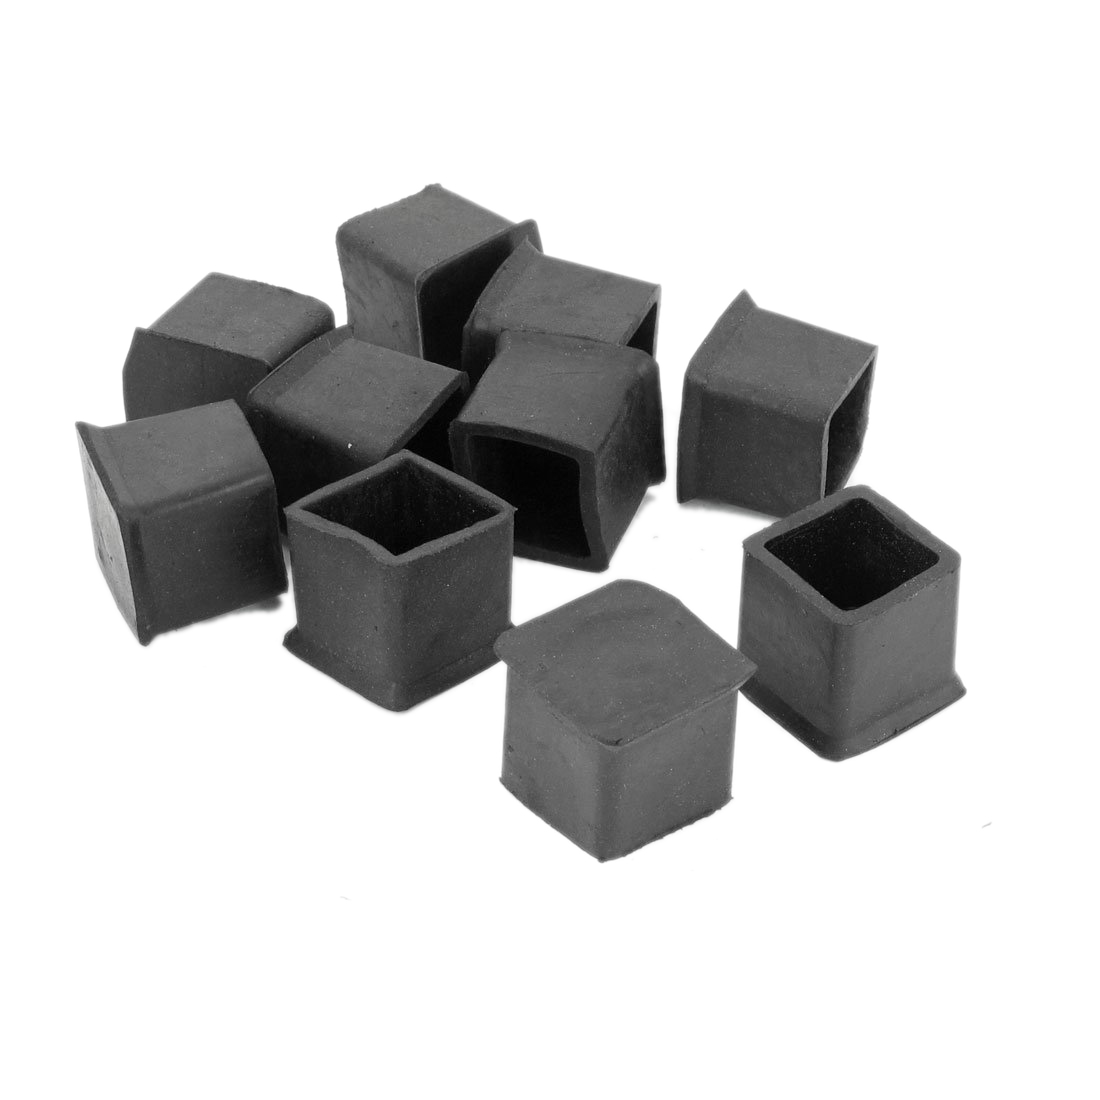 Wholesale 5* 10 Pcs Black Rubber 25mm x 25mm Furniture Chair Legs Covers Protectors ...